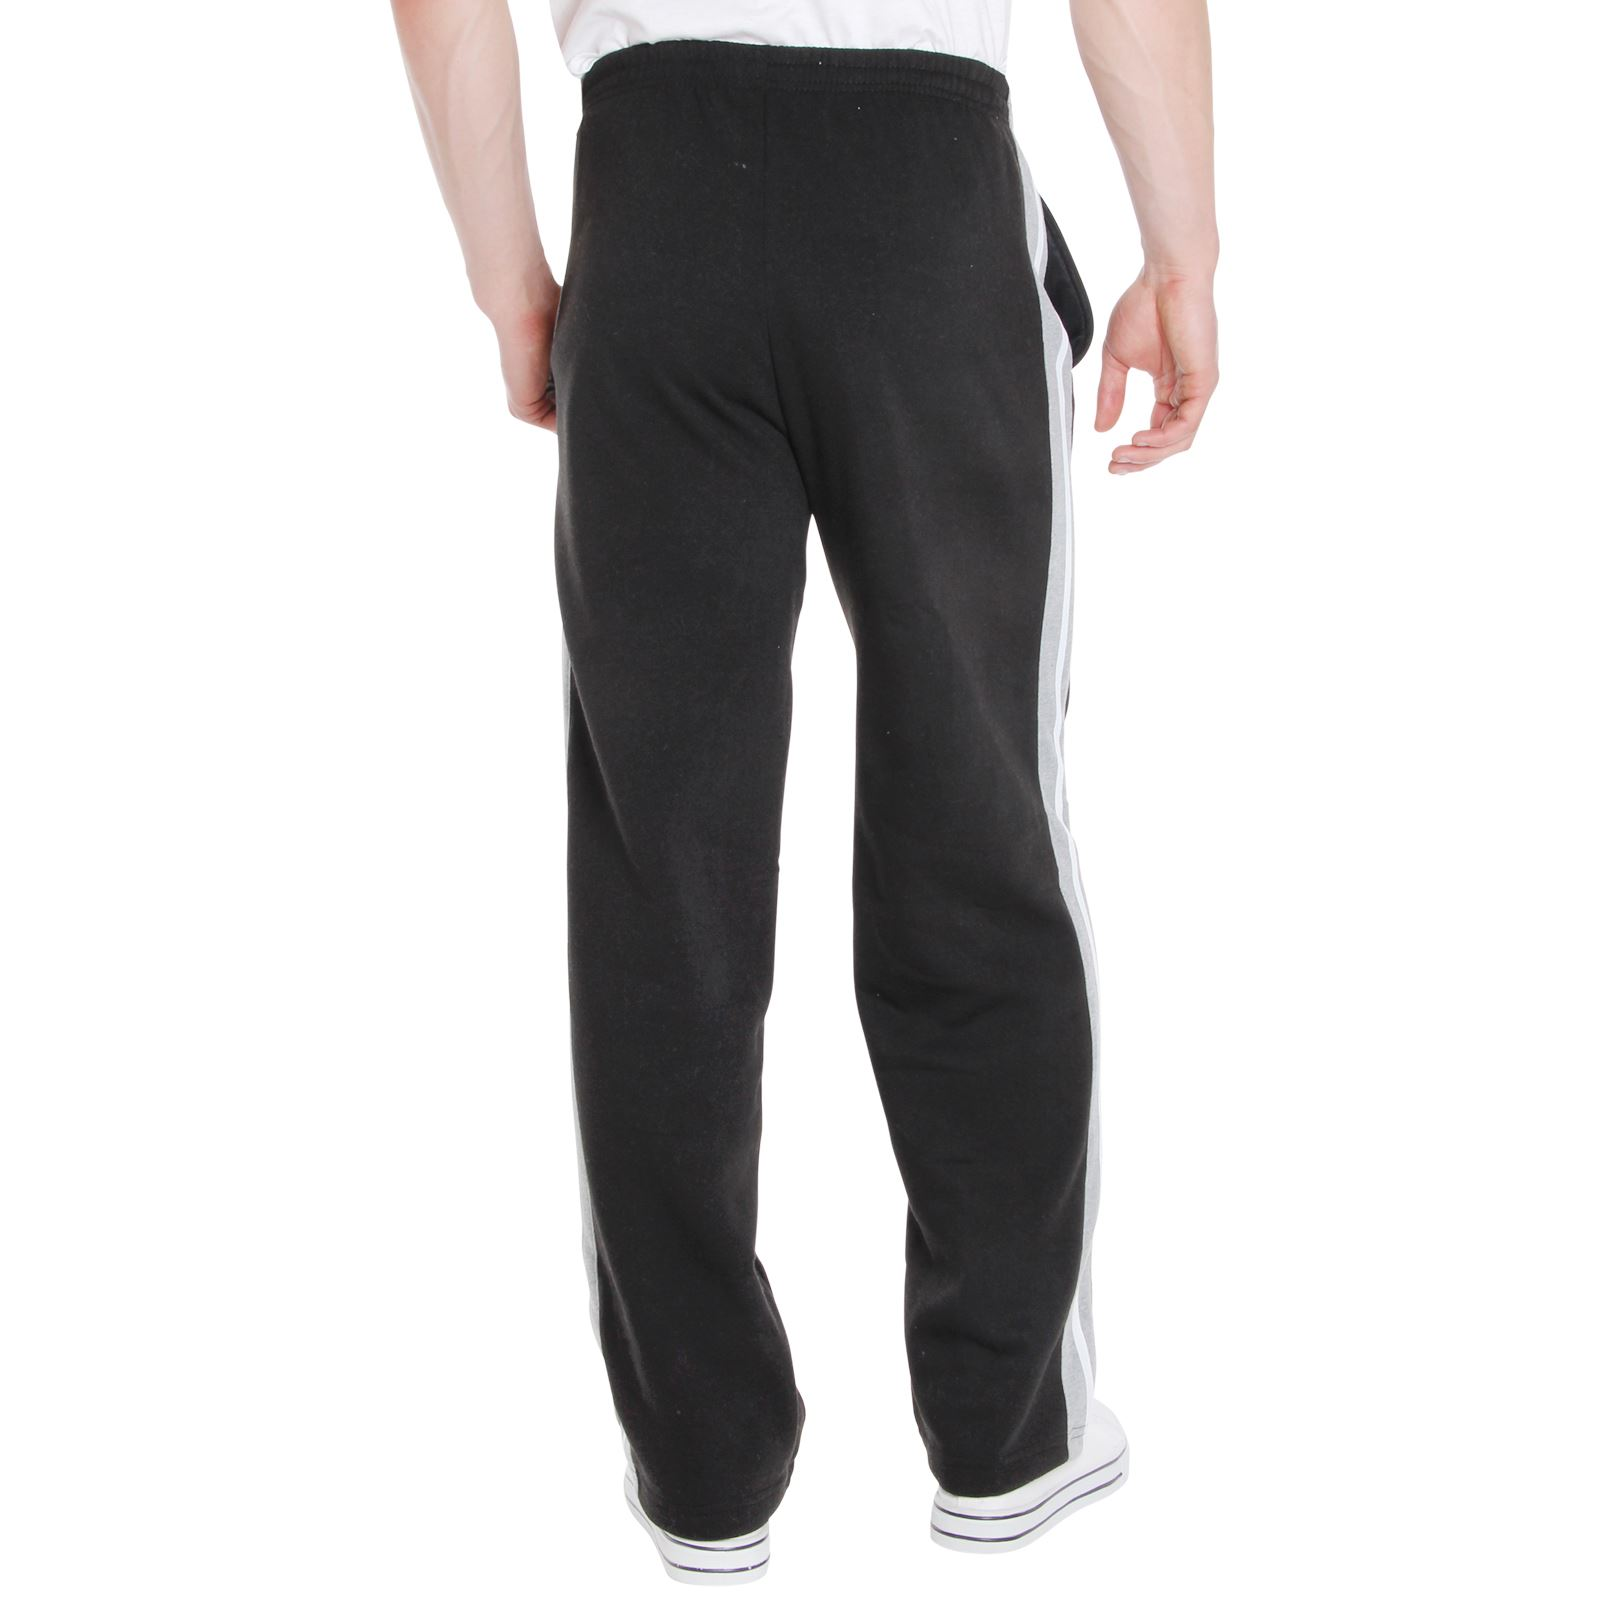 Mens-Tracksuit-Bottoms-Striped-Joggers-Jogging-Trousers-Fleece-Pants-Casual-Work thumbnail 6